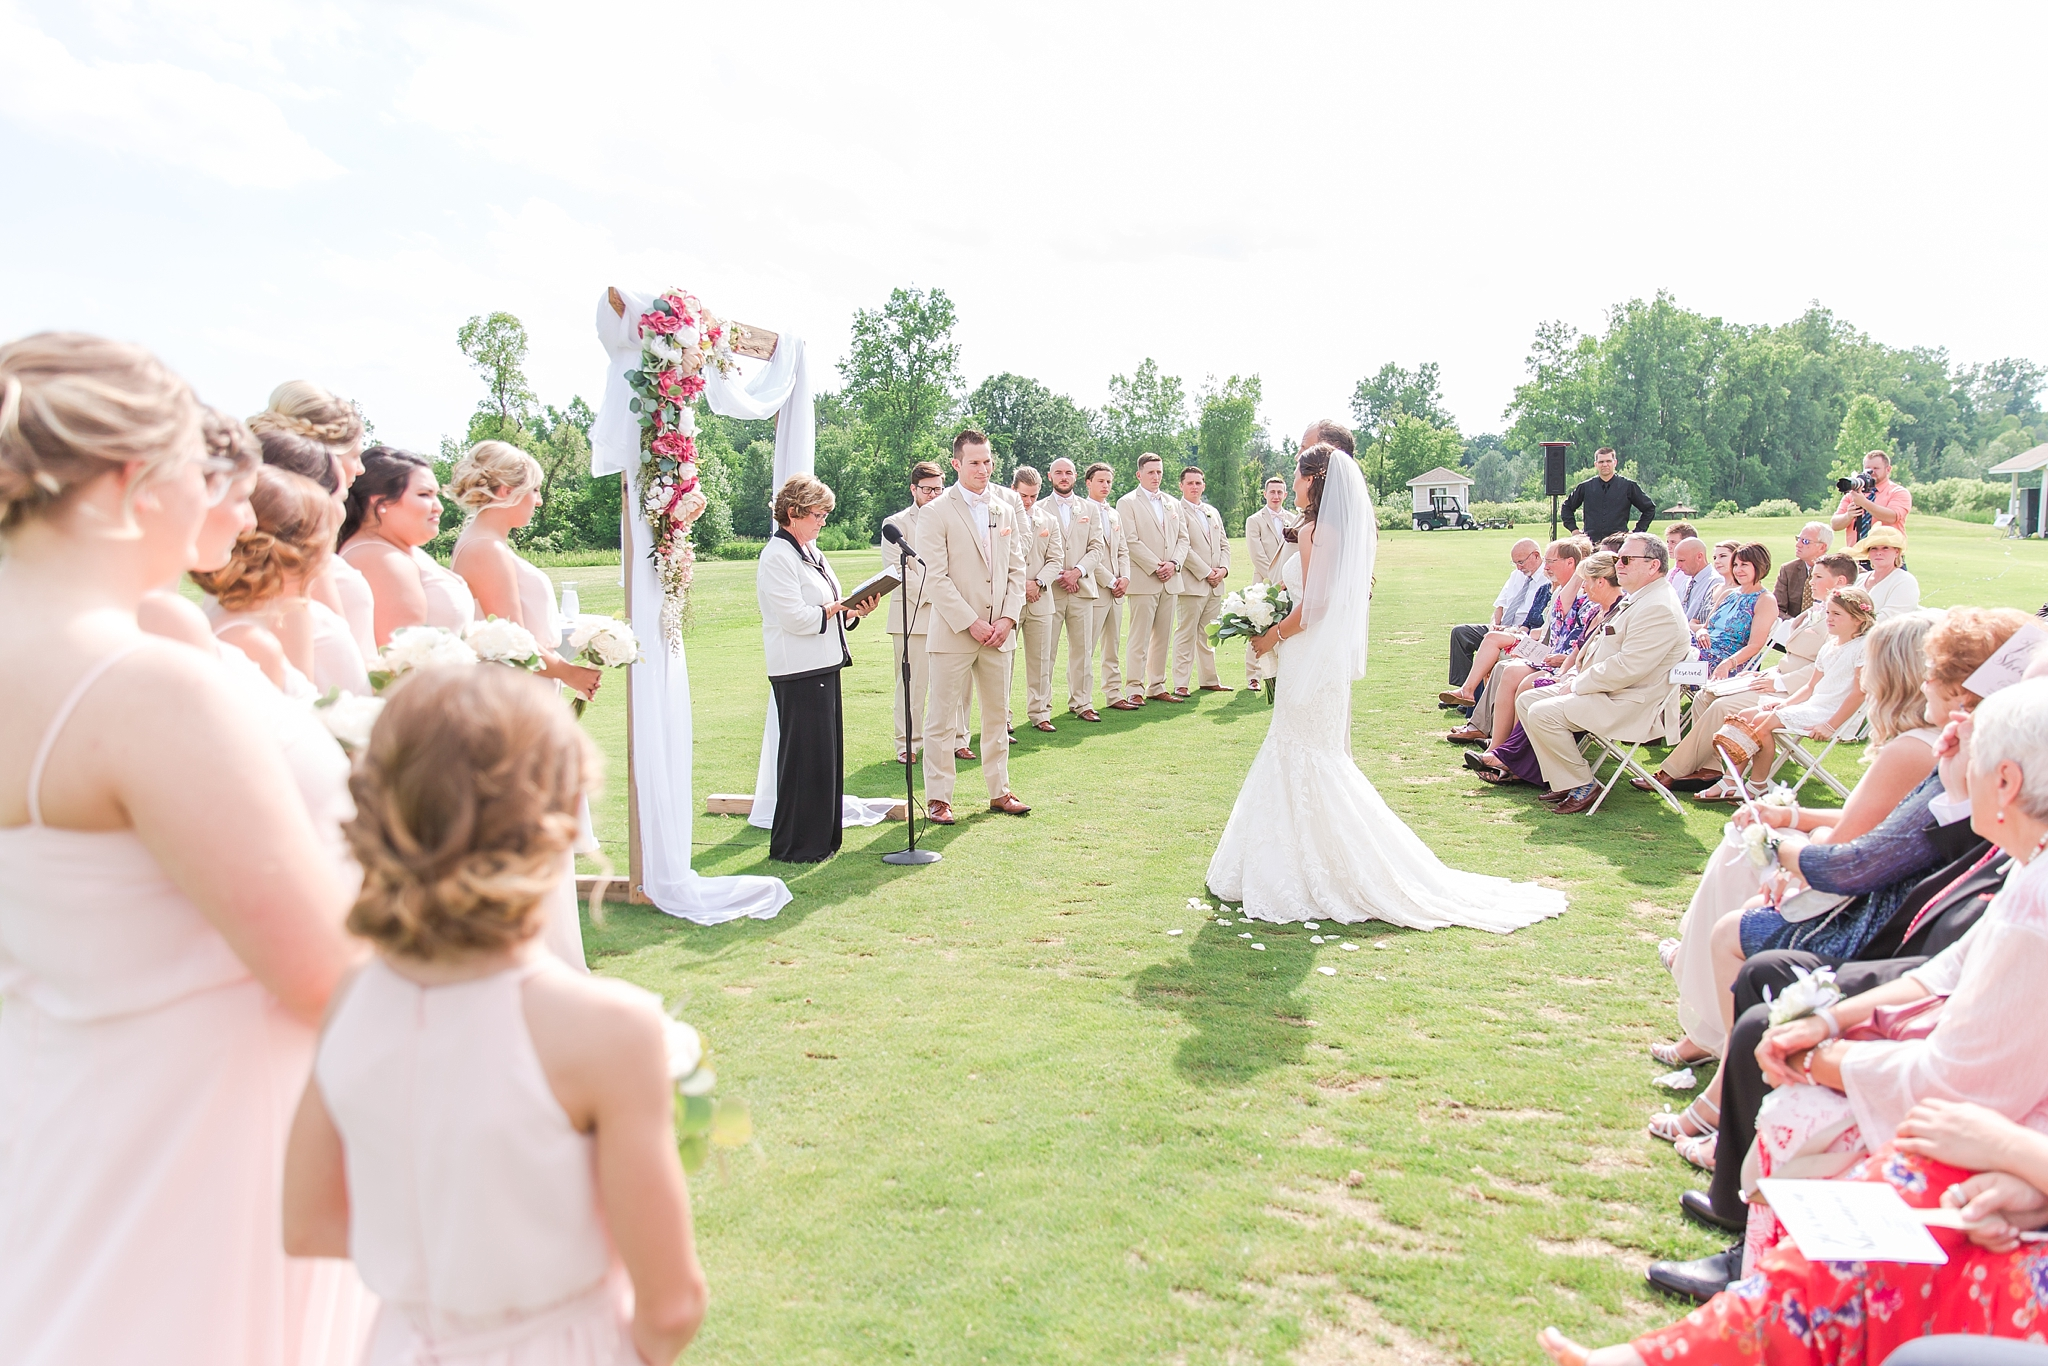 candid-timeless-wedding-photos-at-the-captains-club-in-grand-blanc-michigan-by-courtney-carolyn-photography_0039.jpg